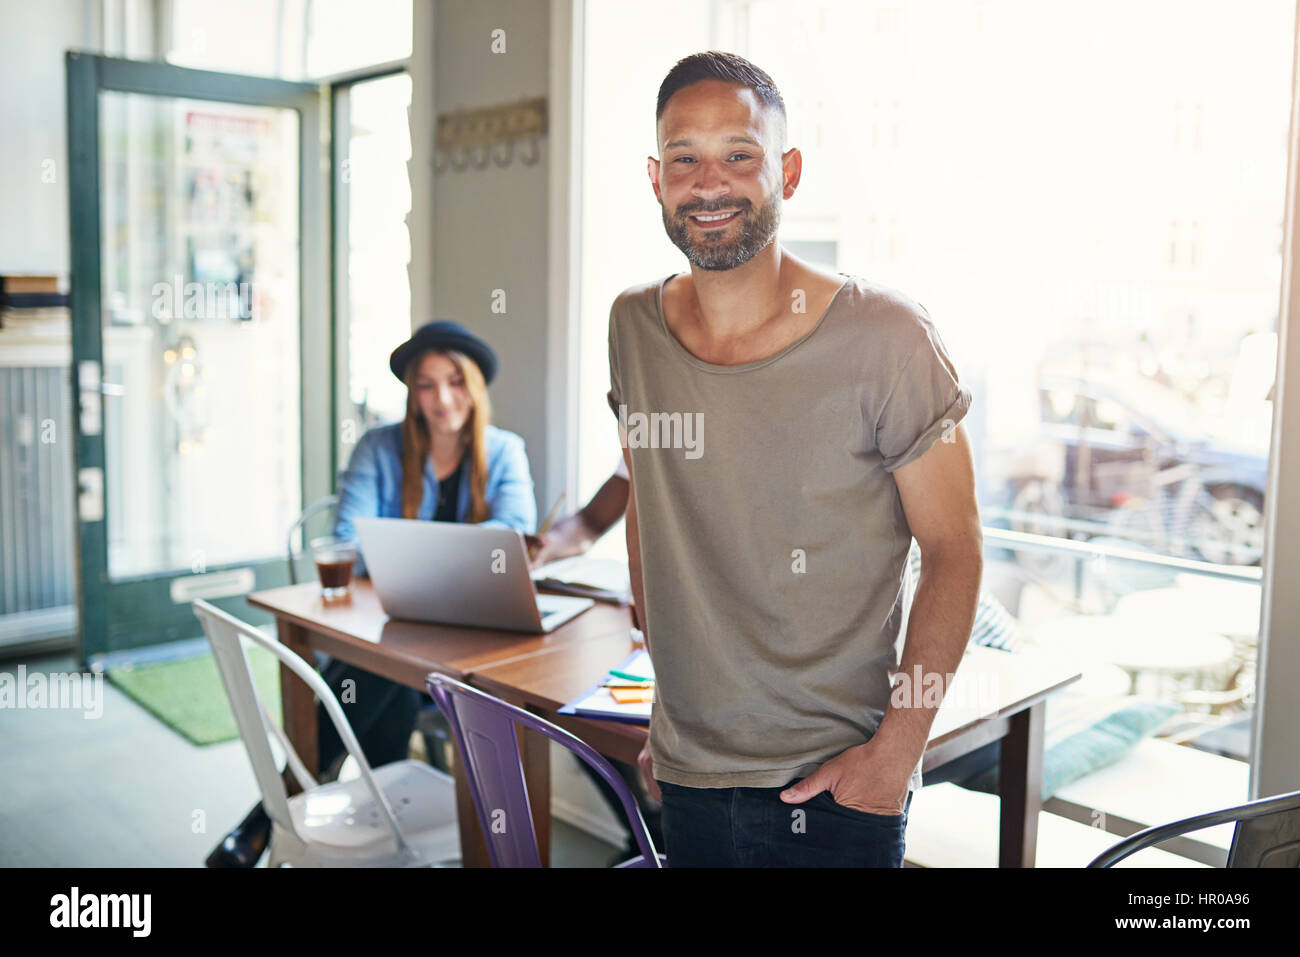 Young casual looking man with hand in pocket looking at camera on background of people at table. - Stock Image